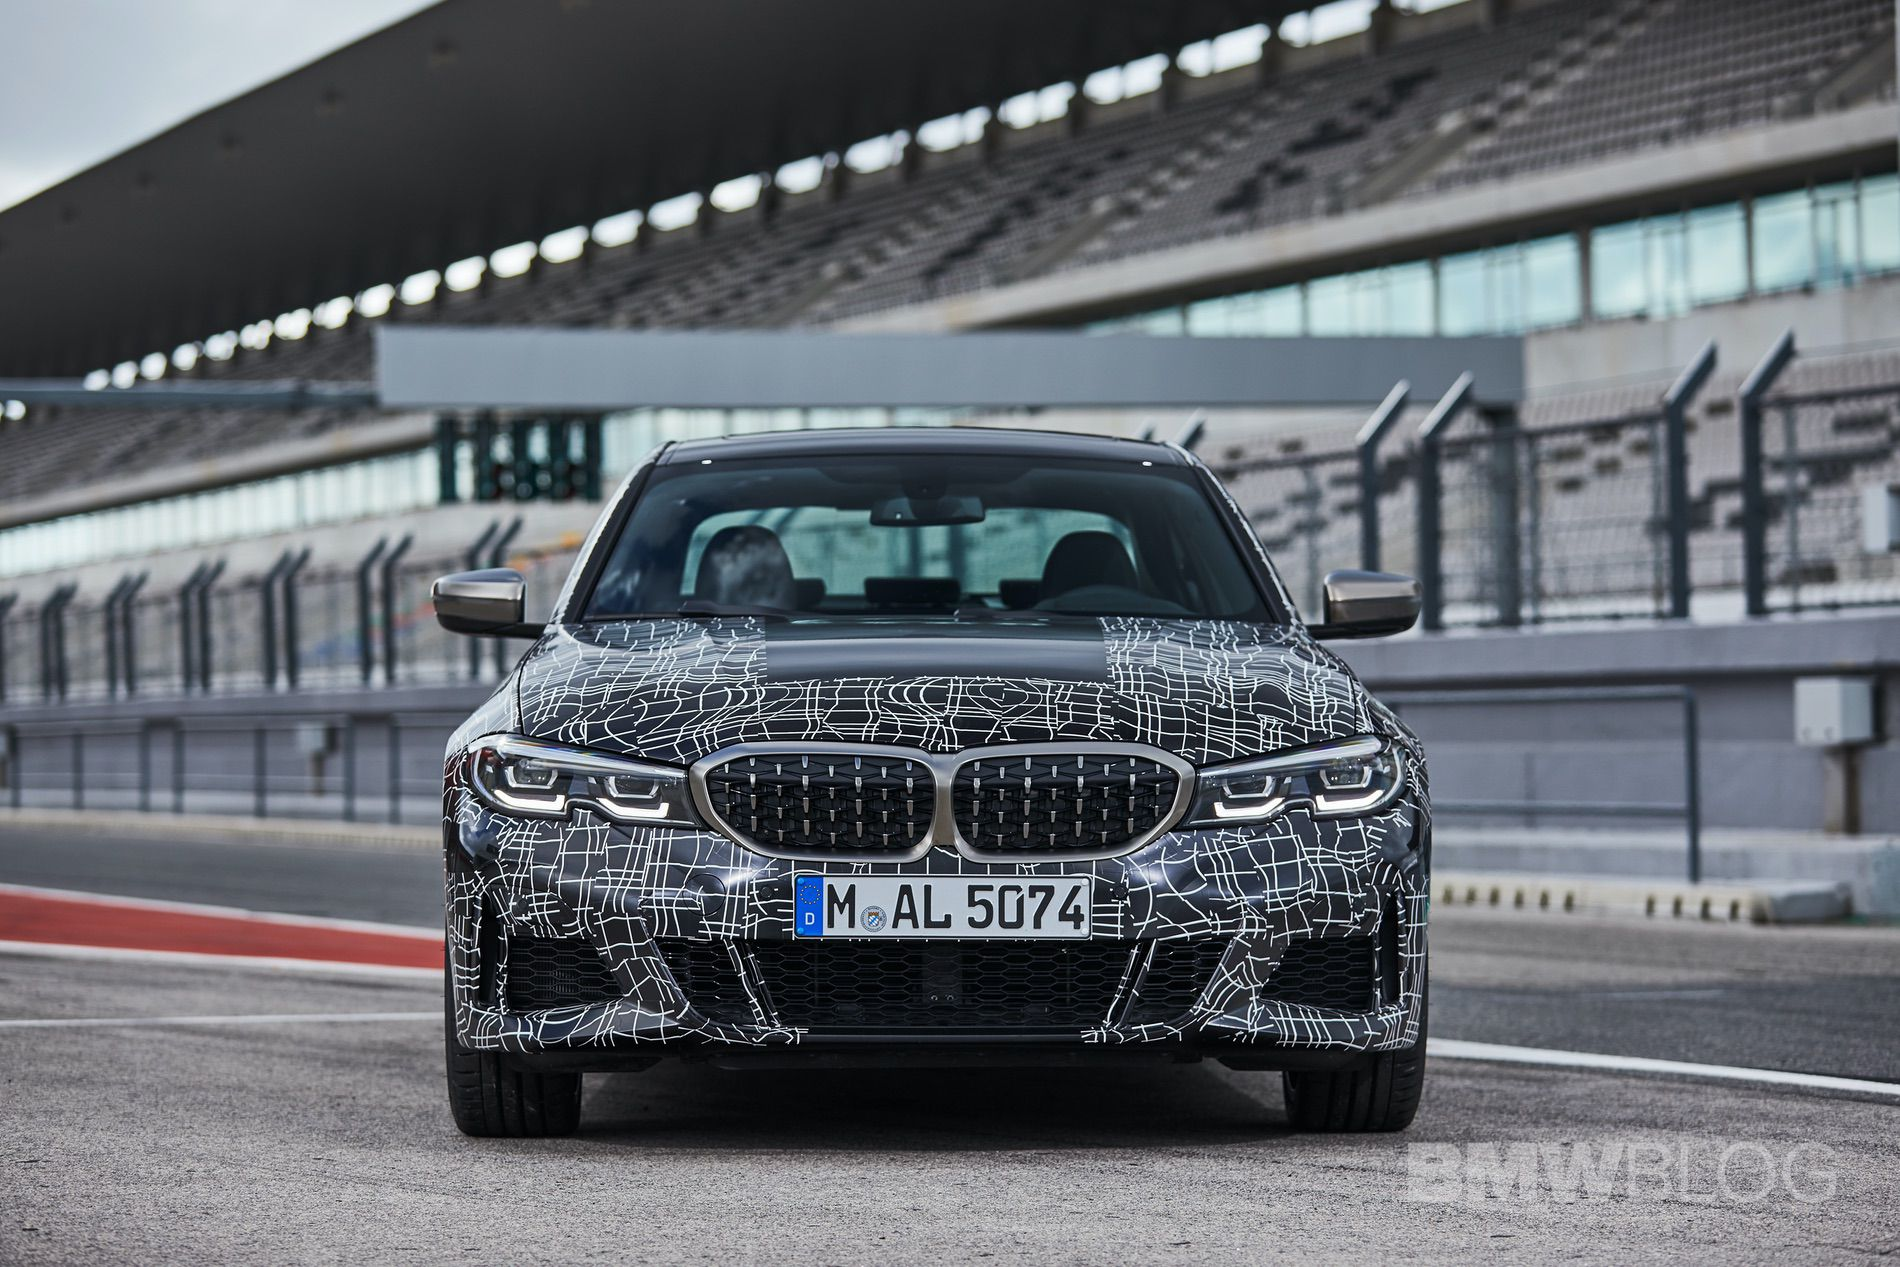 FIRST DRIVE: 2019 BMW M340i xDrive - Just Shy Of An M3